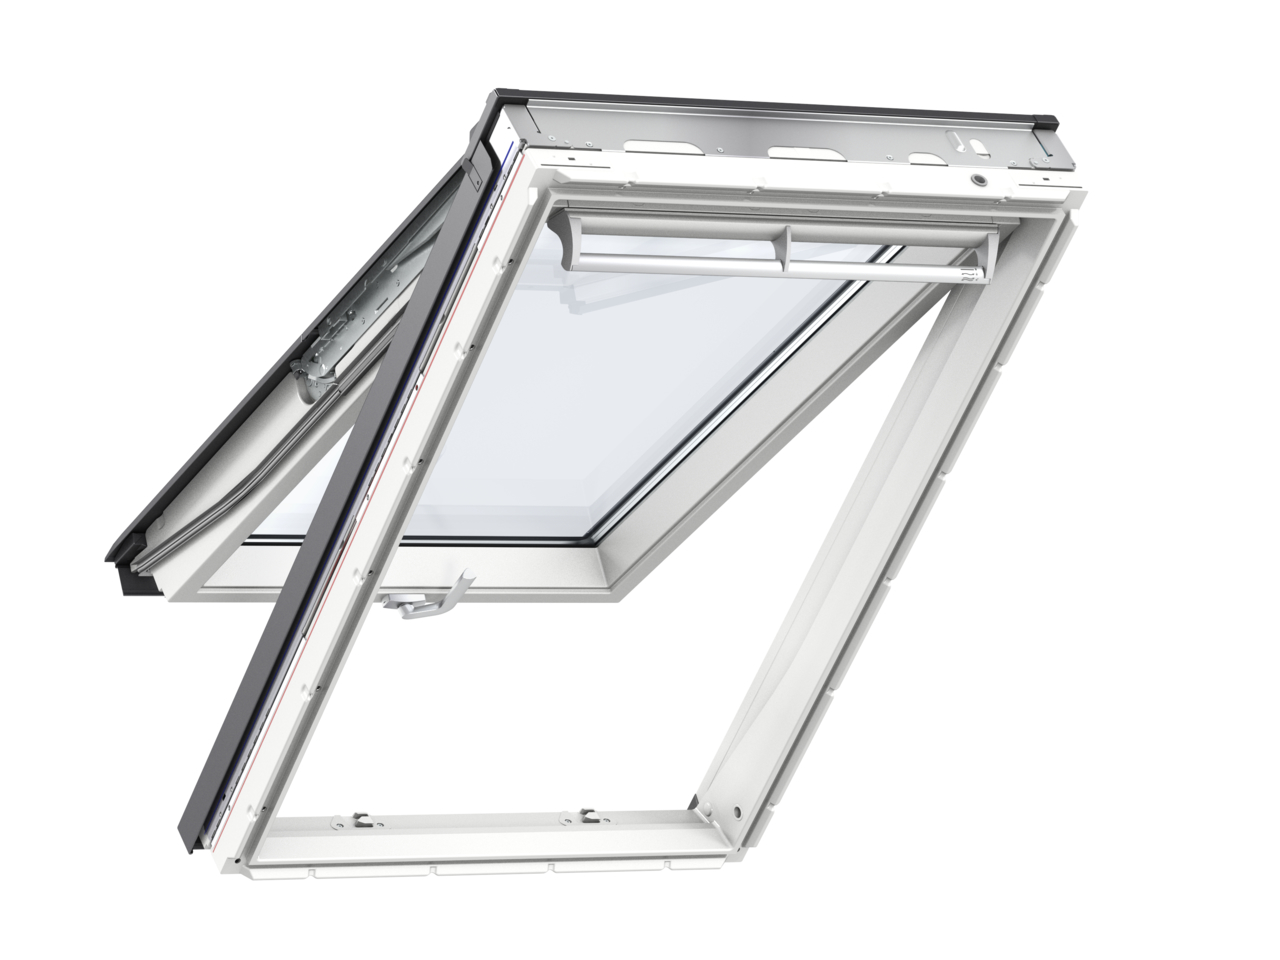 Velux GPU CK04 550 x 980mm Top Hung Standard 70Pane Roof Window - White Polyurethane